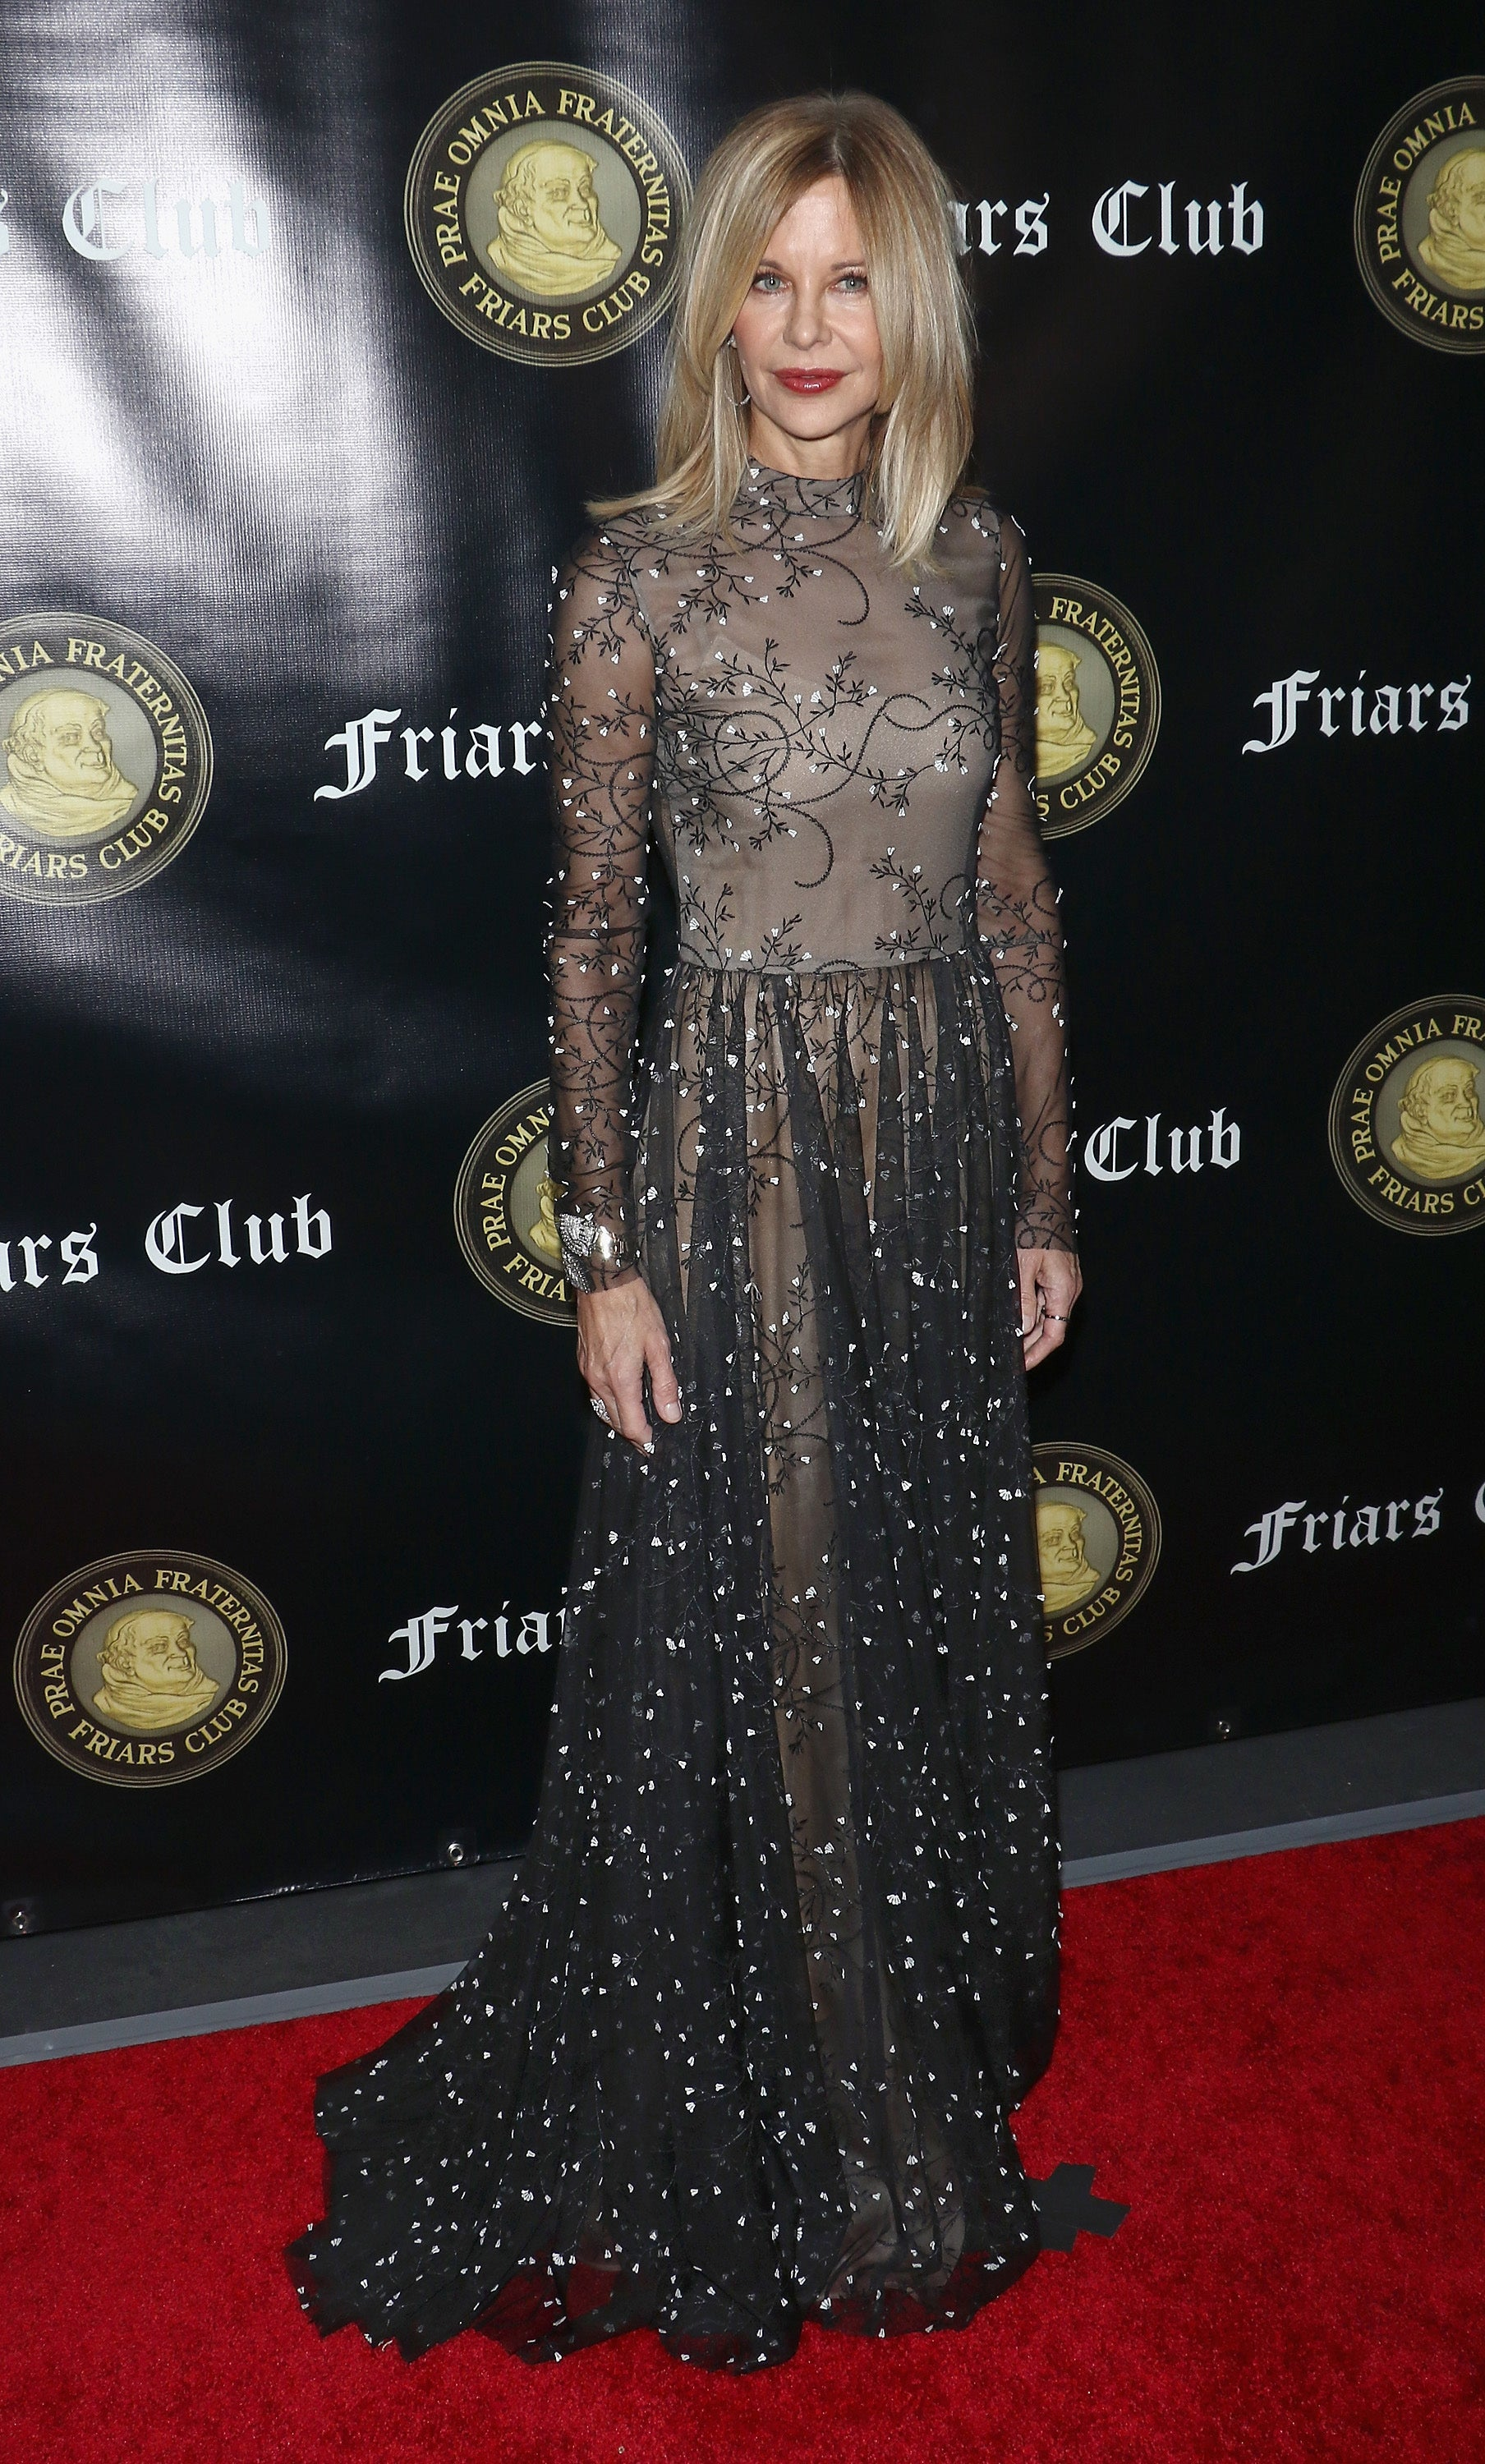 Meg Ryan Is Glowing In First Red Carpet Appearance Since Announcing Engagement To John Mellencamp Entertainment Tonight